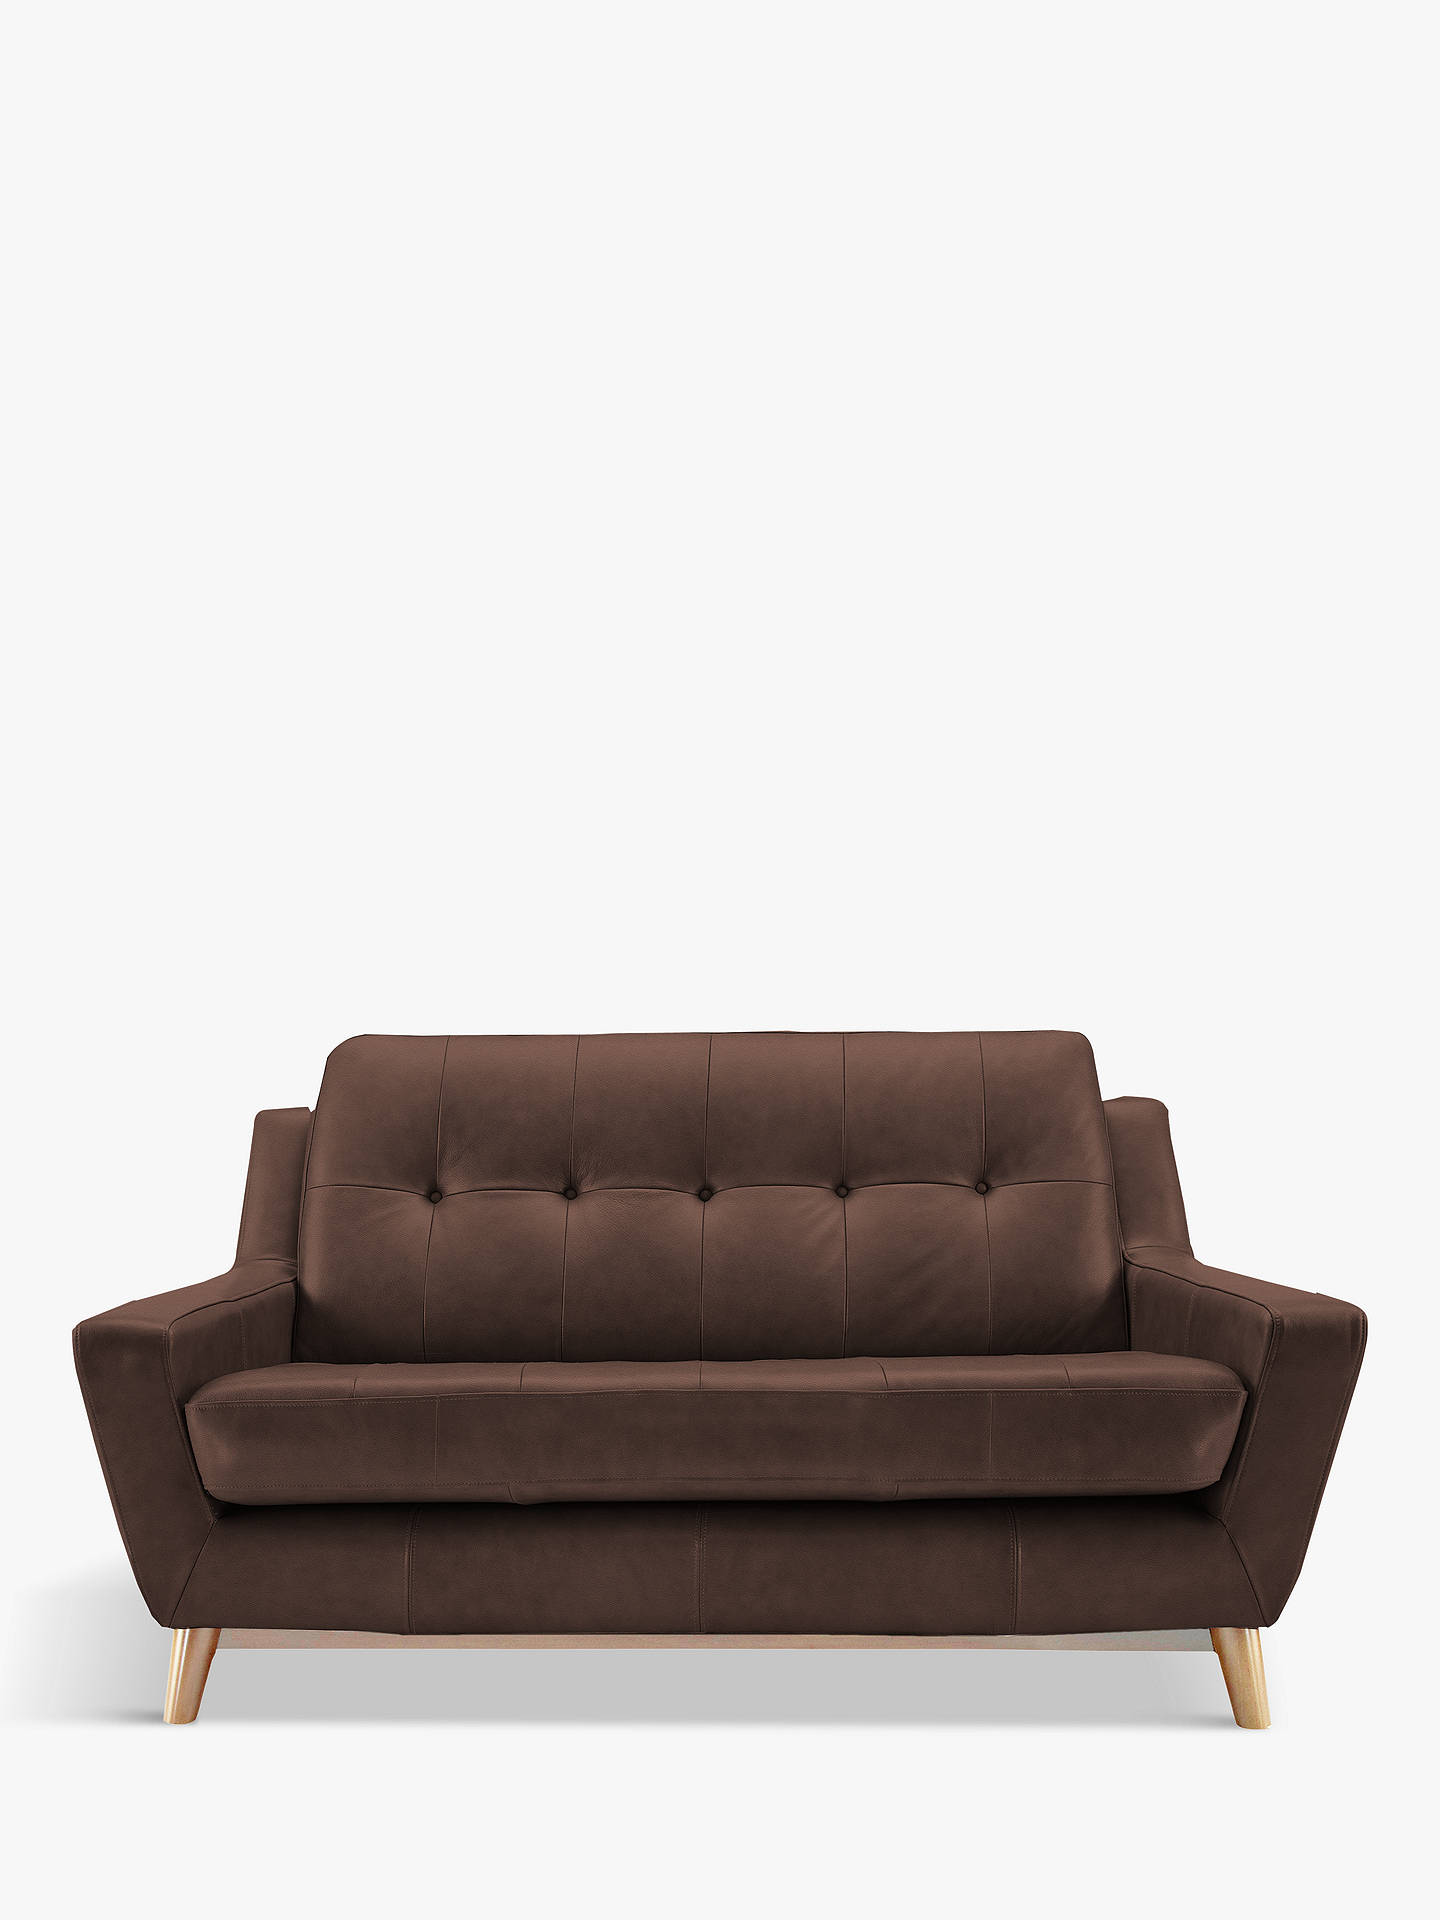 BuyG Plan Vintage The Fifty Three Small 2 Seater Leather Sofa, Capri Oak Online at johnlewis.com